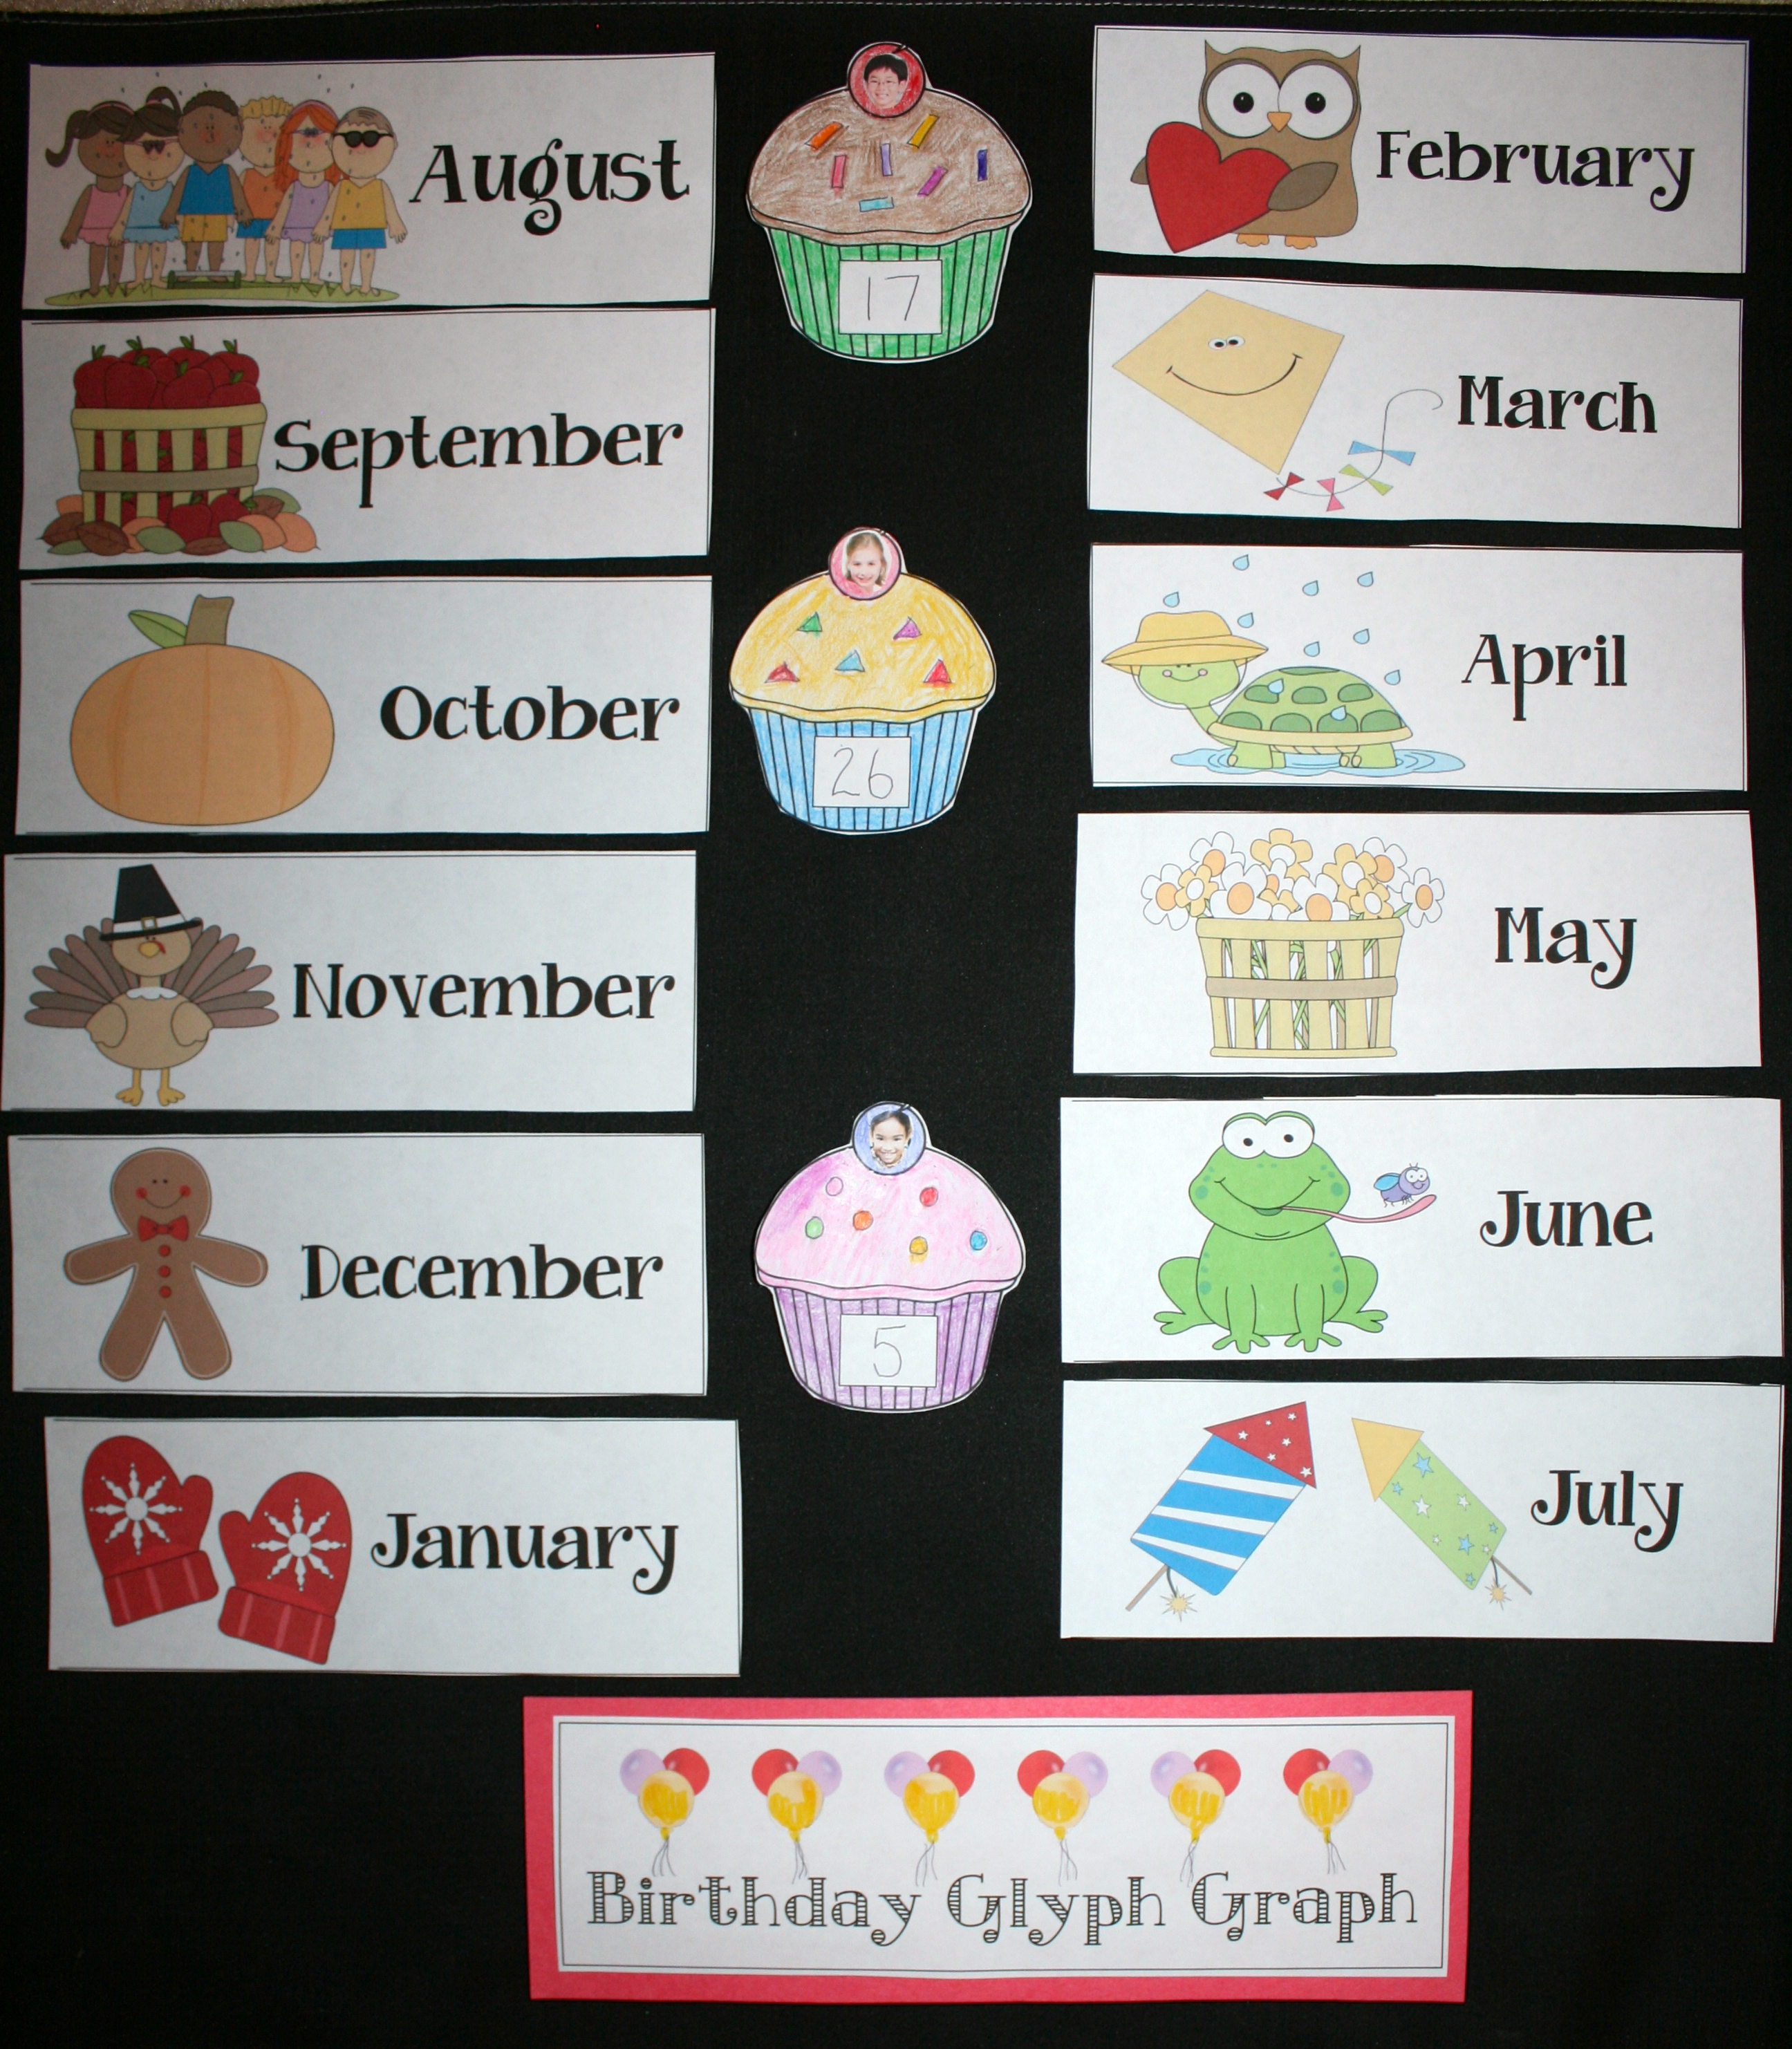 glyphs, graphs, 1st day of school ideas, back to school bulletin boards, september bulletin boards, birthday bulletin boards, birthday activities, student birthday ideas, 1st day of school activity, student made bulletin boards, icebreakers for the 1st week of school,